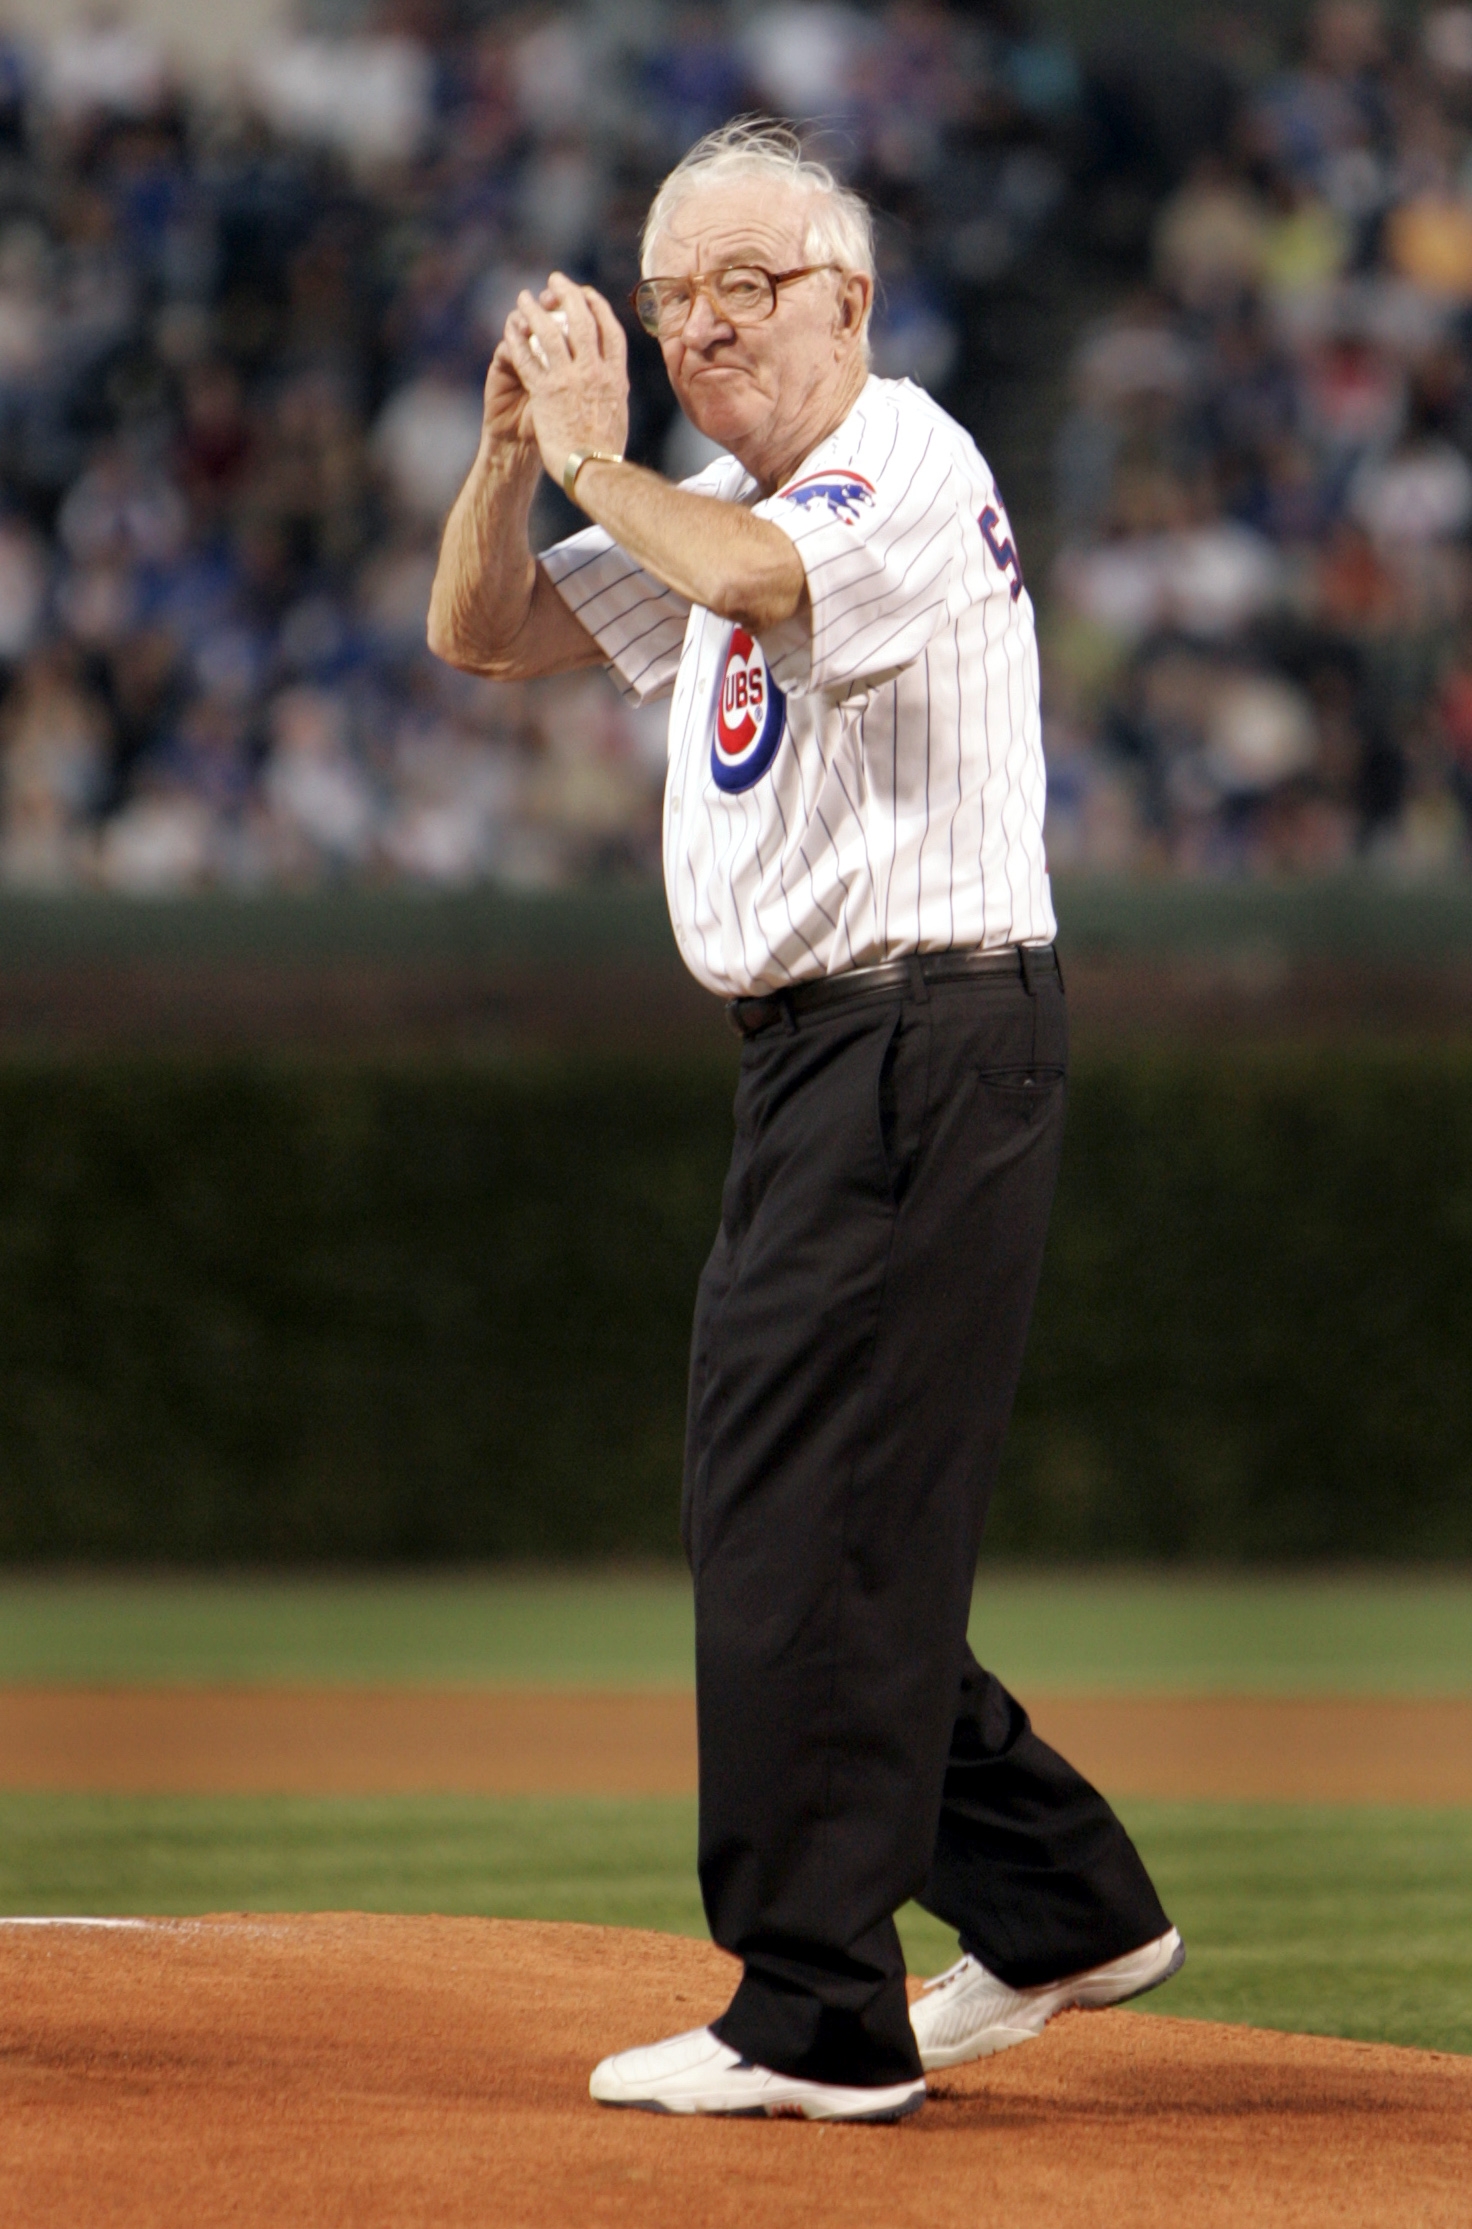 FILE - In this Sept. 14, 2005, file photo, U.S. Supreme Court Justice John Paul Stevens winds up to throw out the first pitch before the start of the Chicago Cubs game with the Cincinnati Reds at Wrigley Field in Chicago. As a boy, he watched his beloved